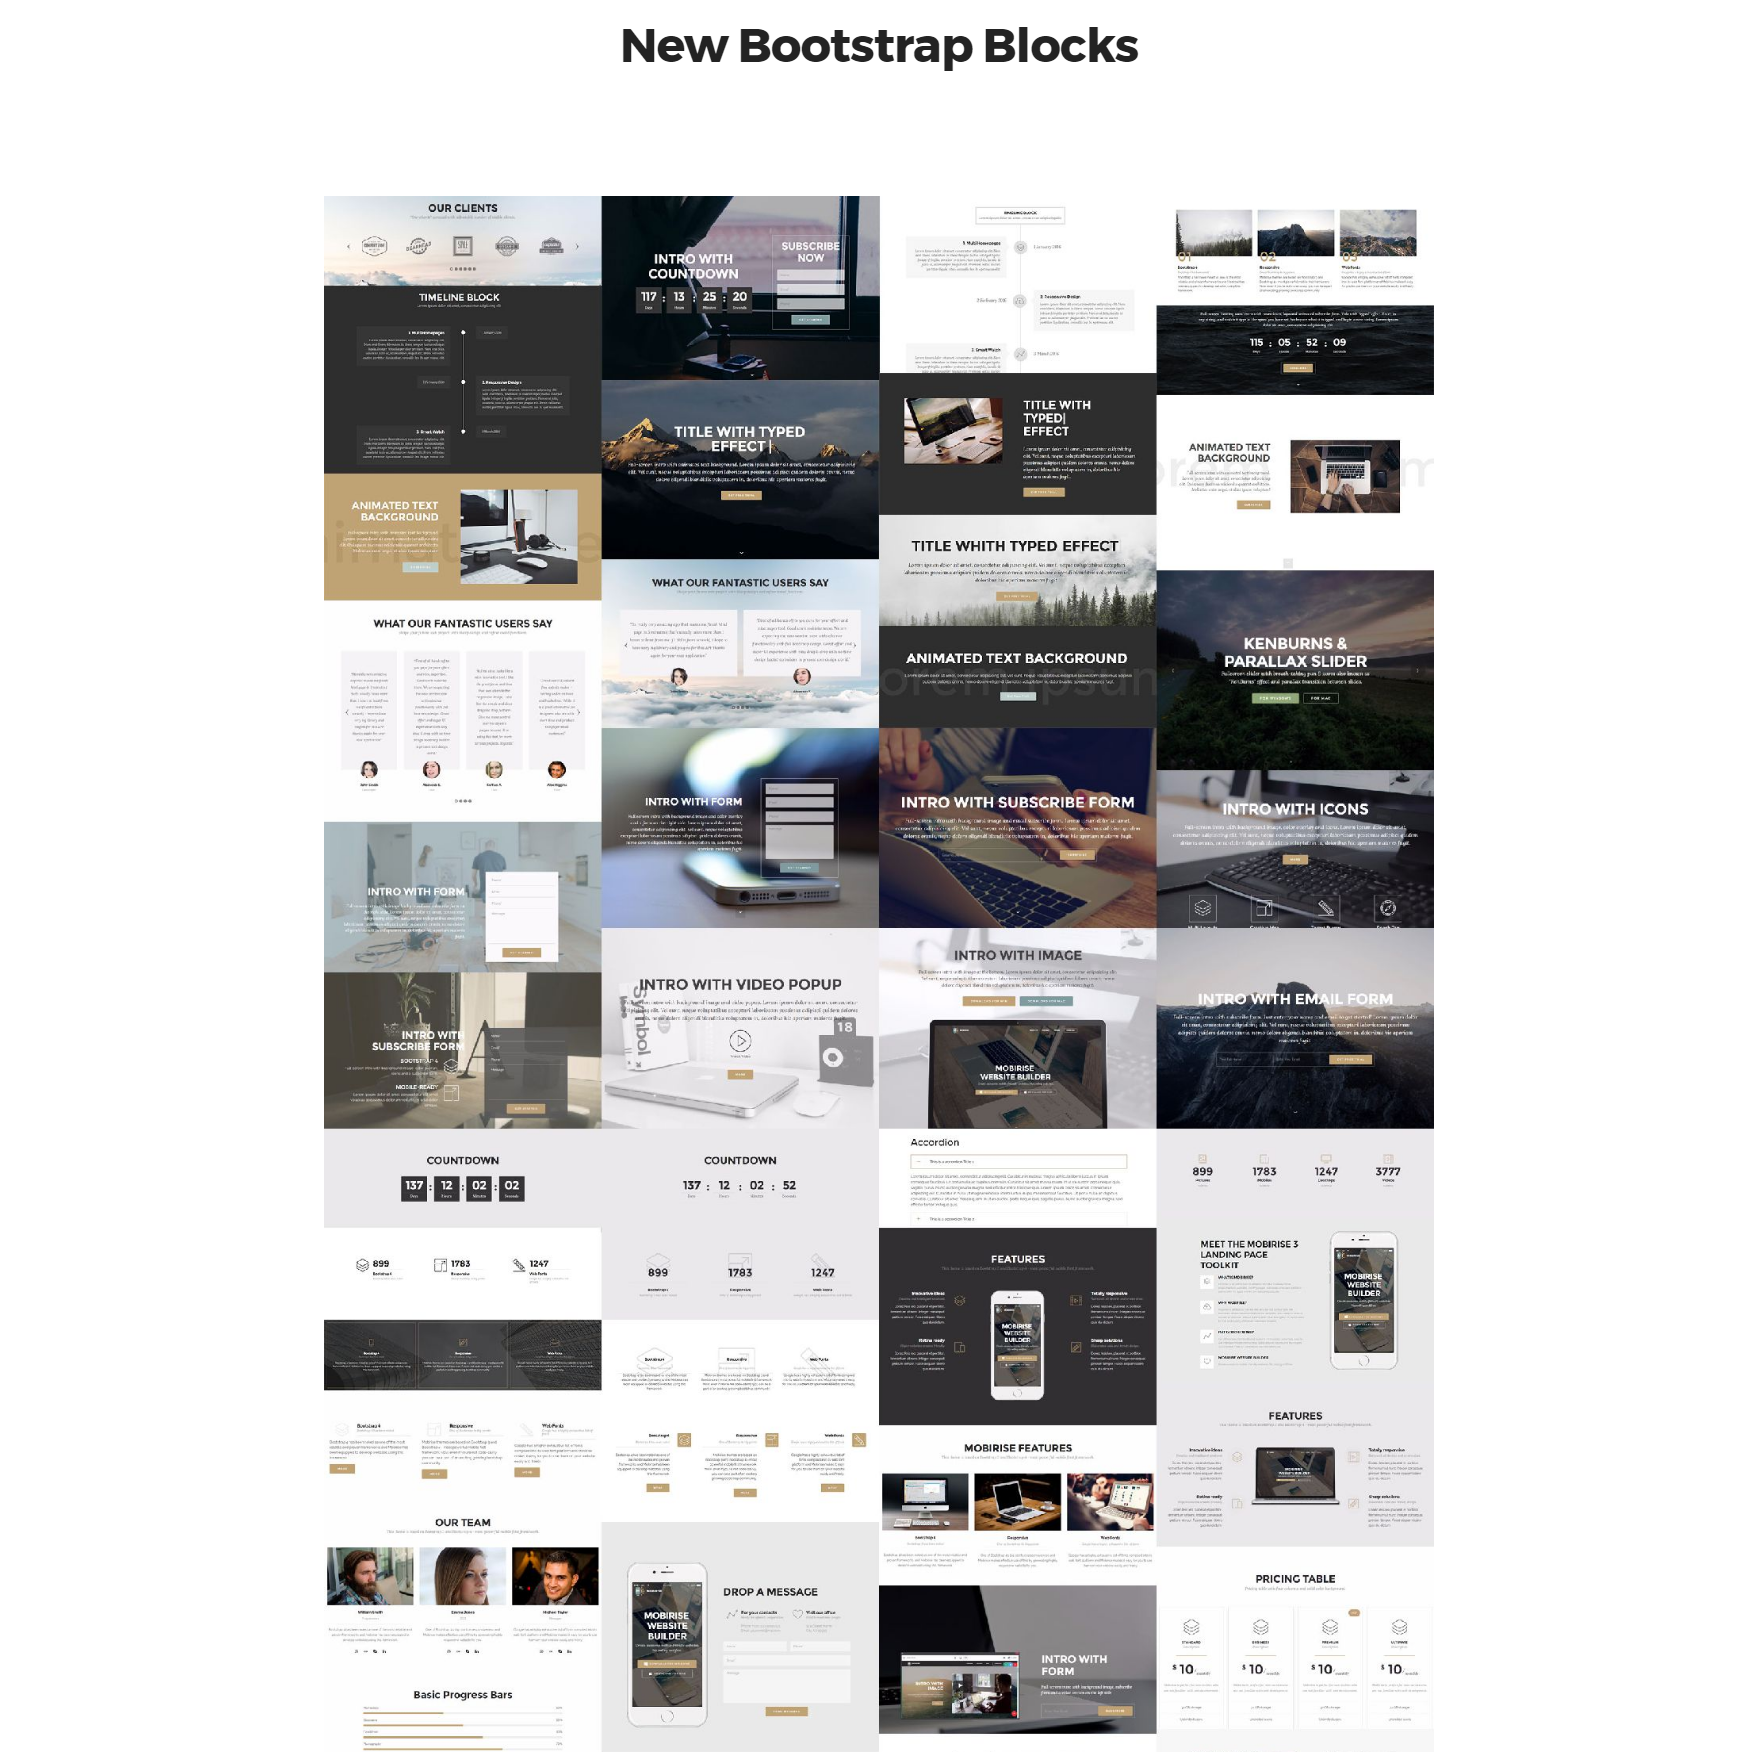 Free Download New Bootstrap Templates